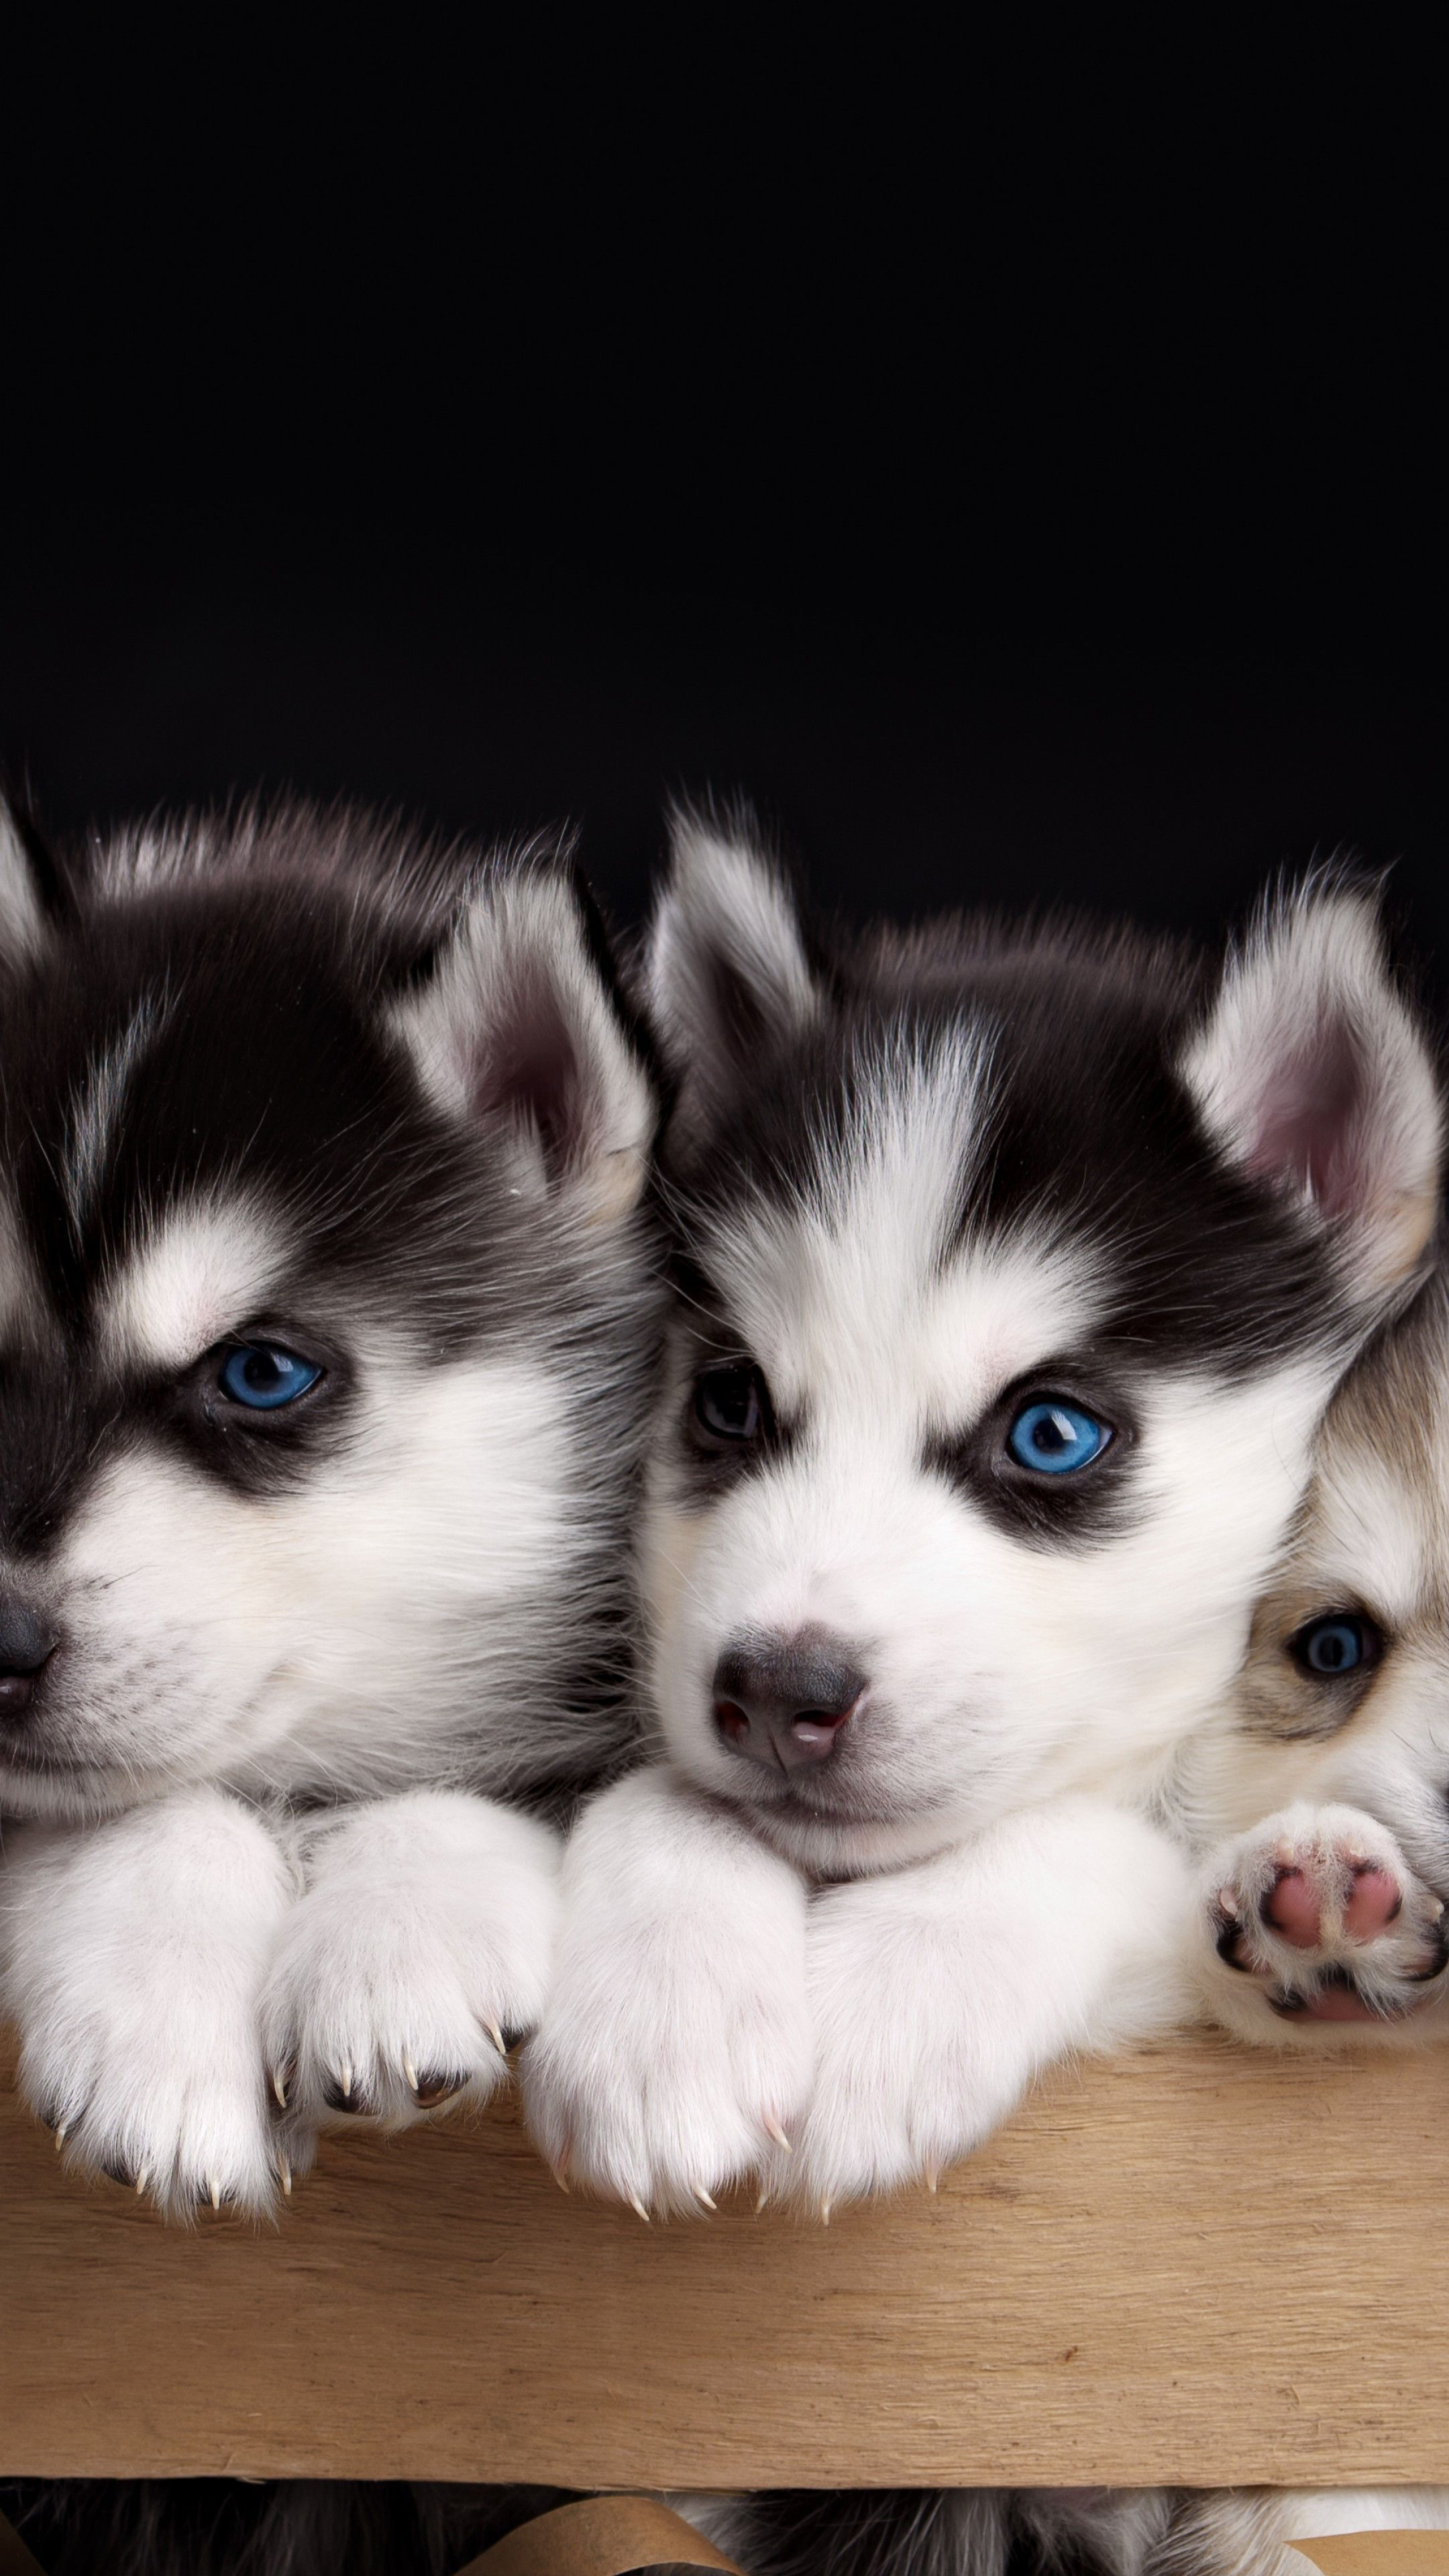 Husky Dog Wallpapers 32 Best Free Husky Dog Images For Android Cute Puppies Cute Puppy Wallpaper Puppies